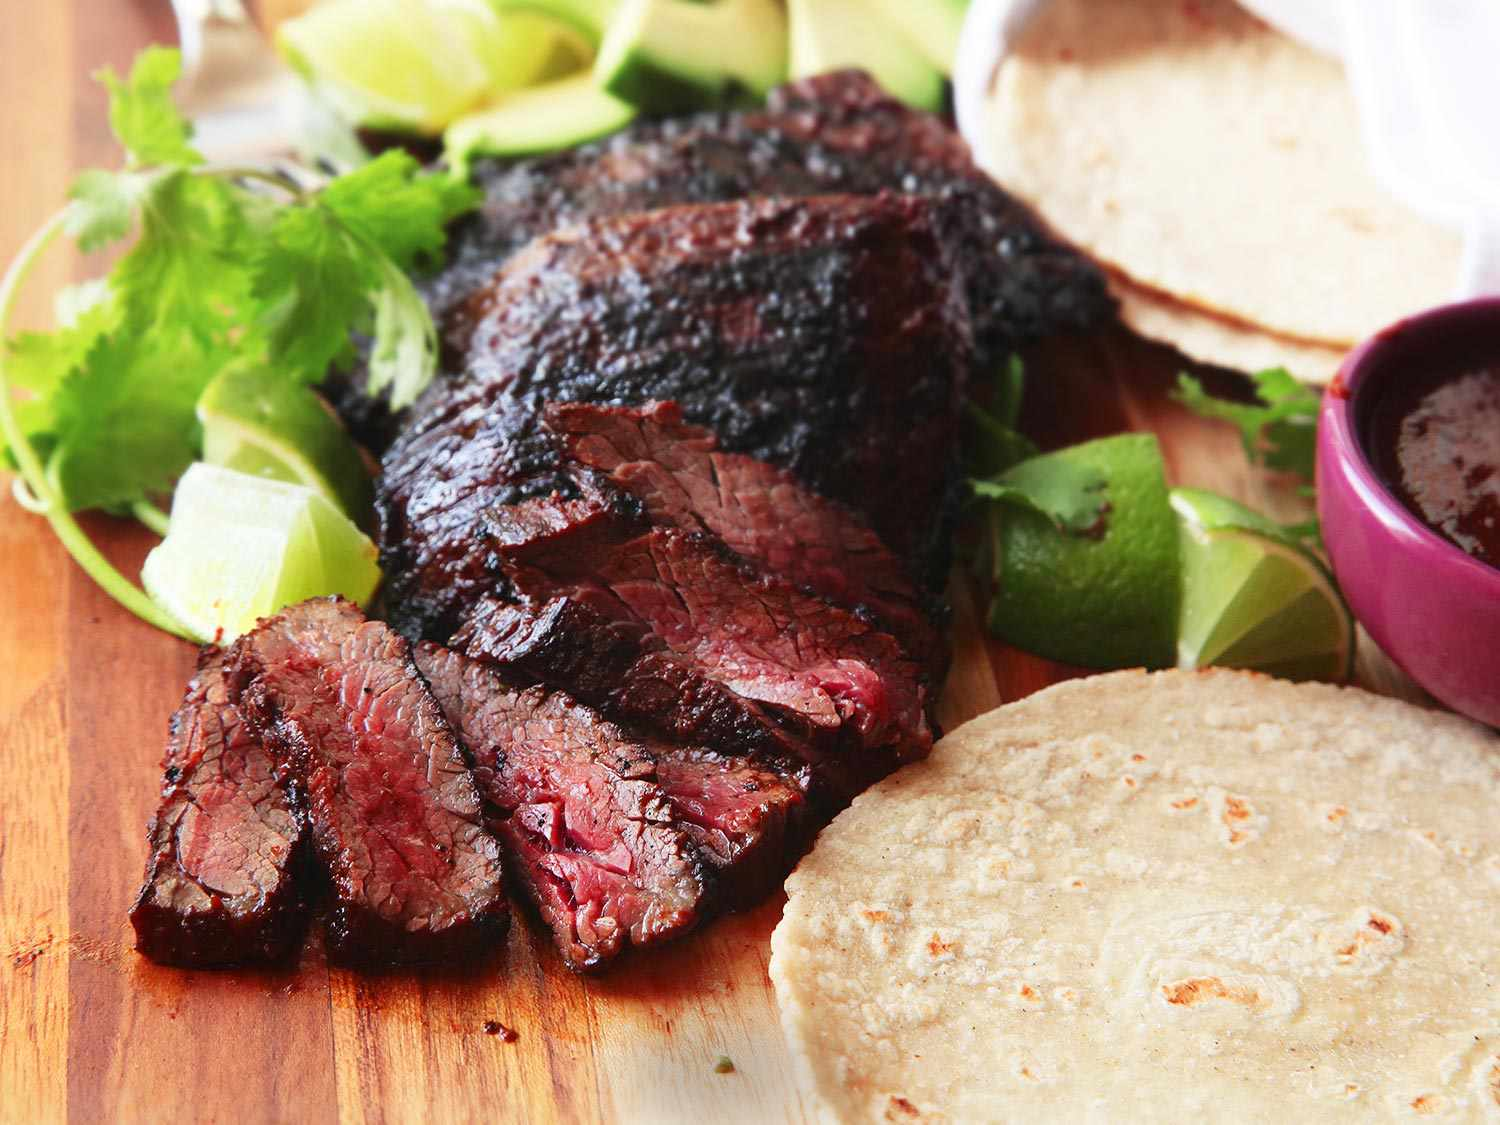 Sliced carne asada surrounded by accoutrements (tortillas, lime wedges, cilantro, and salsa)